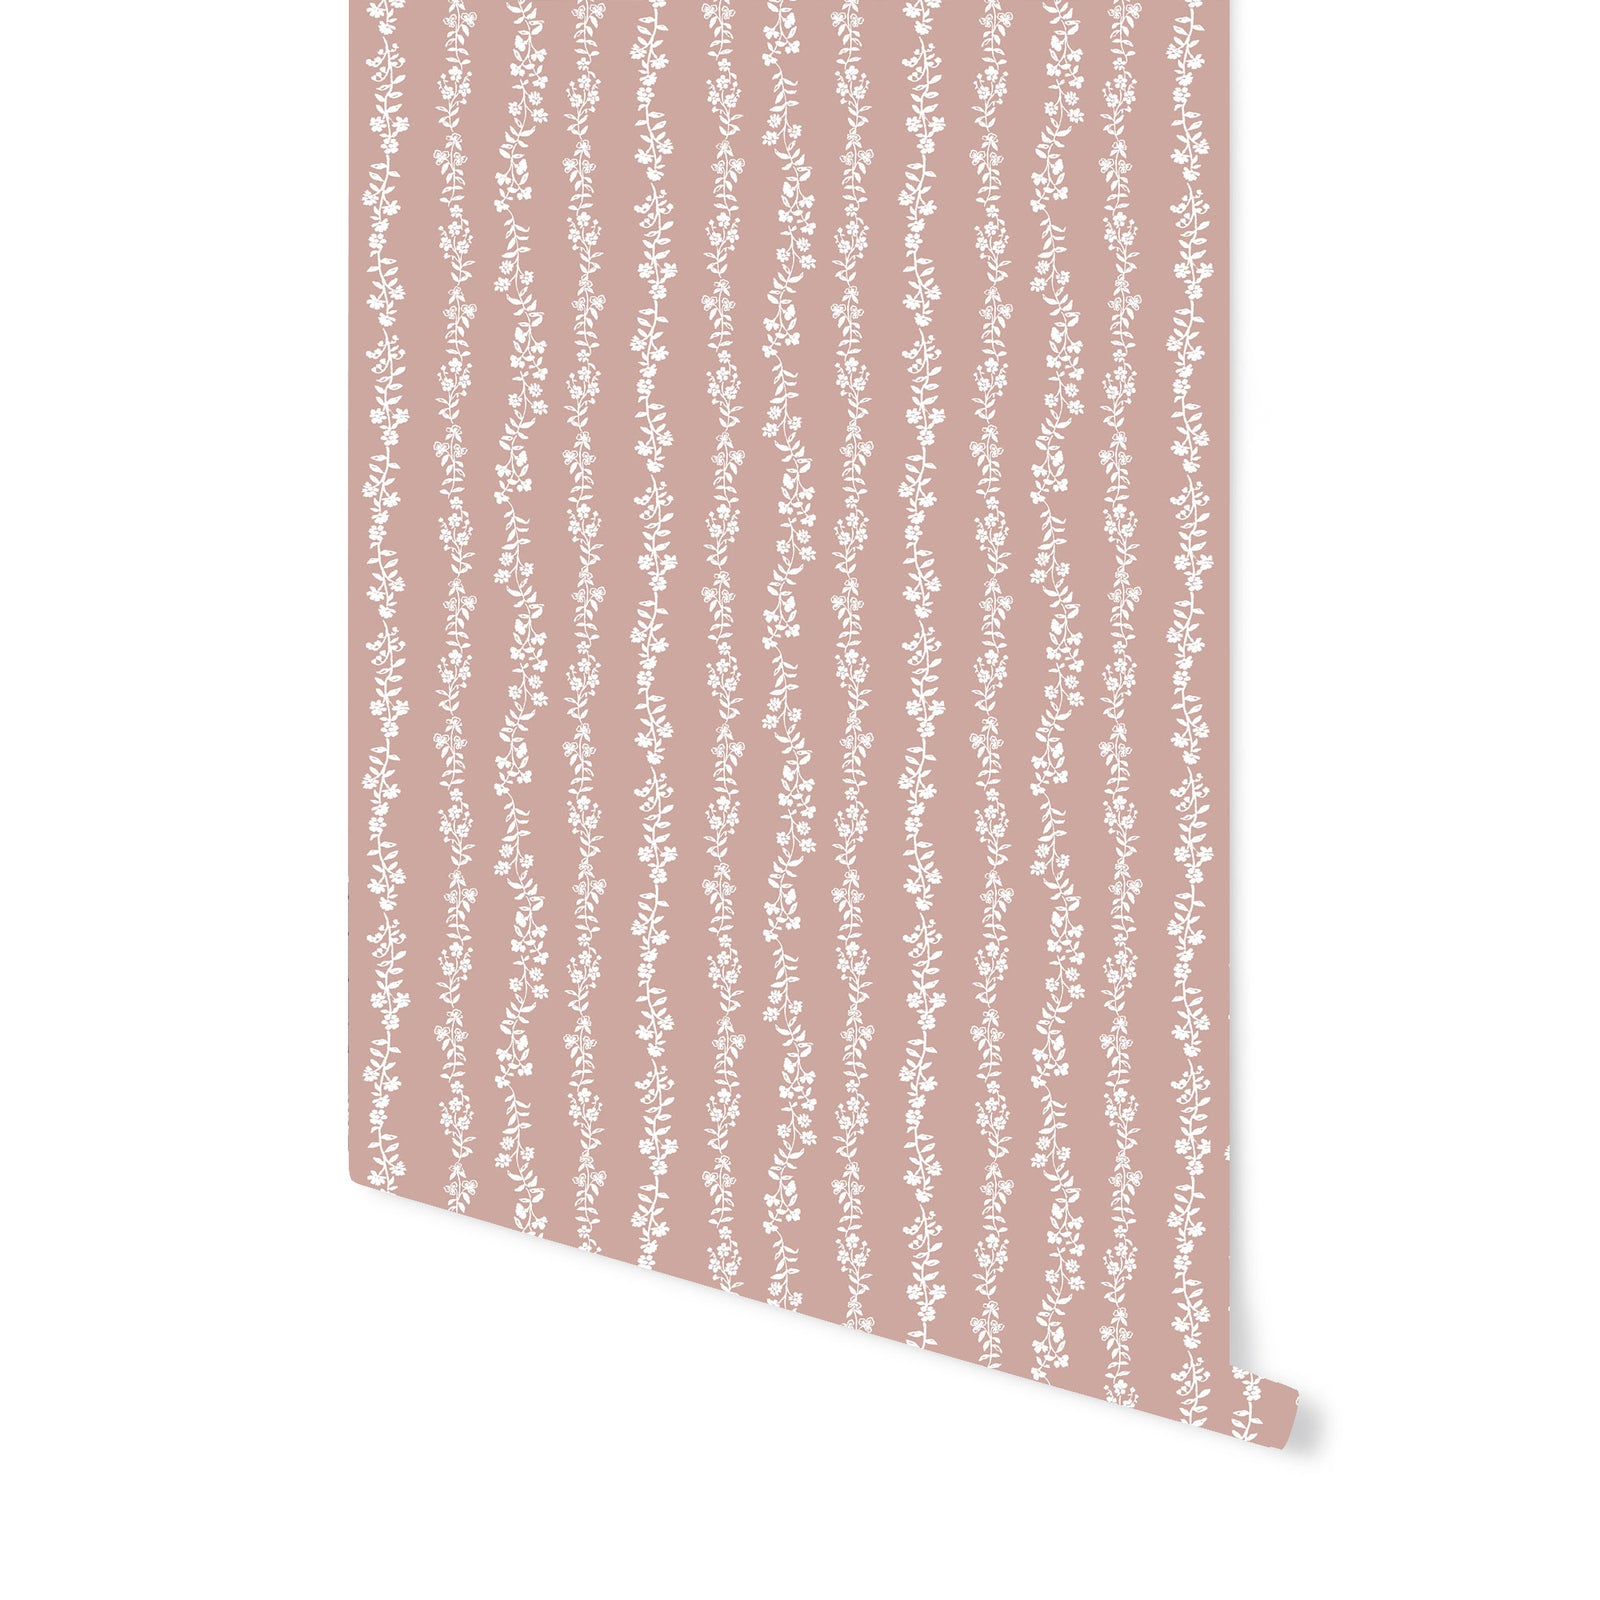 Somerset Wallpaper in Misty Rose